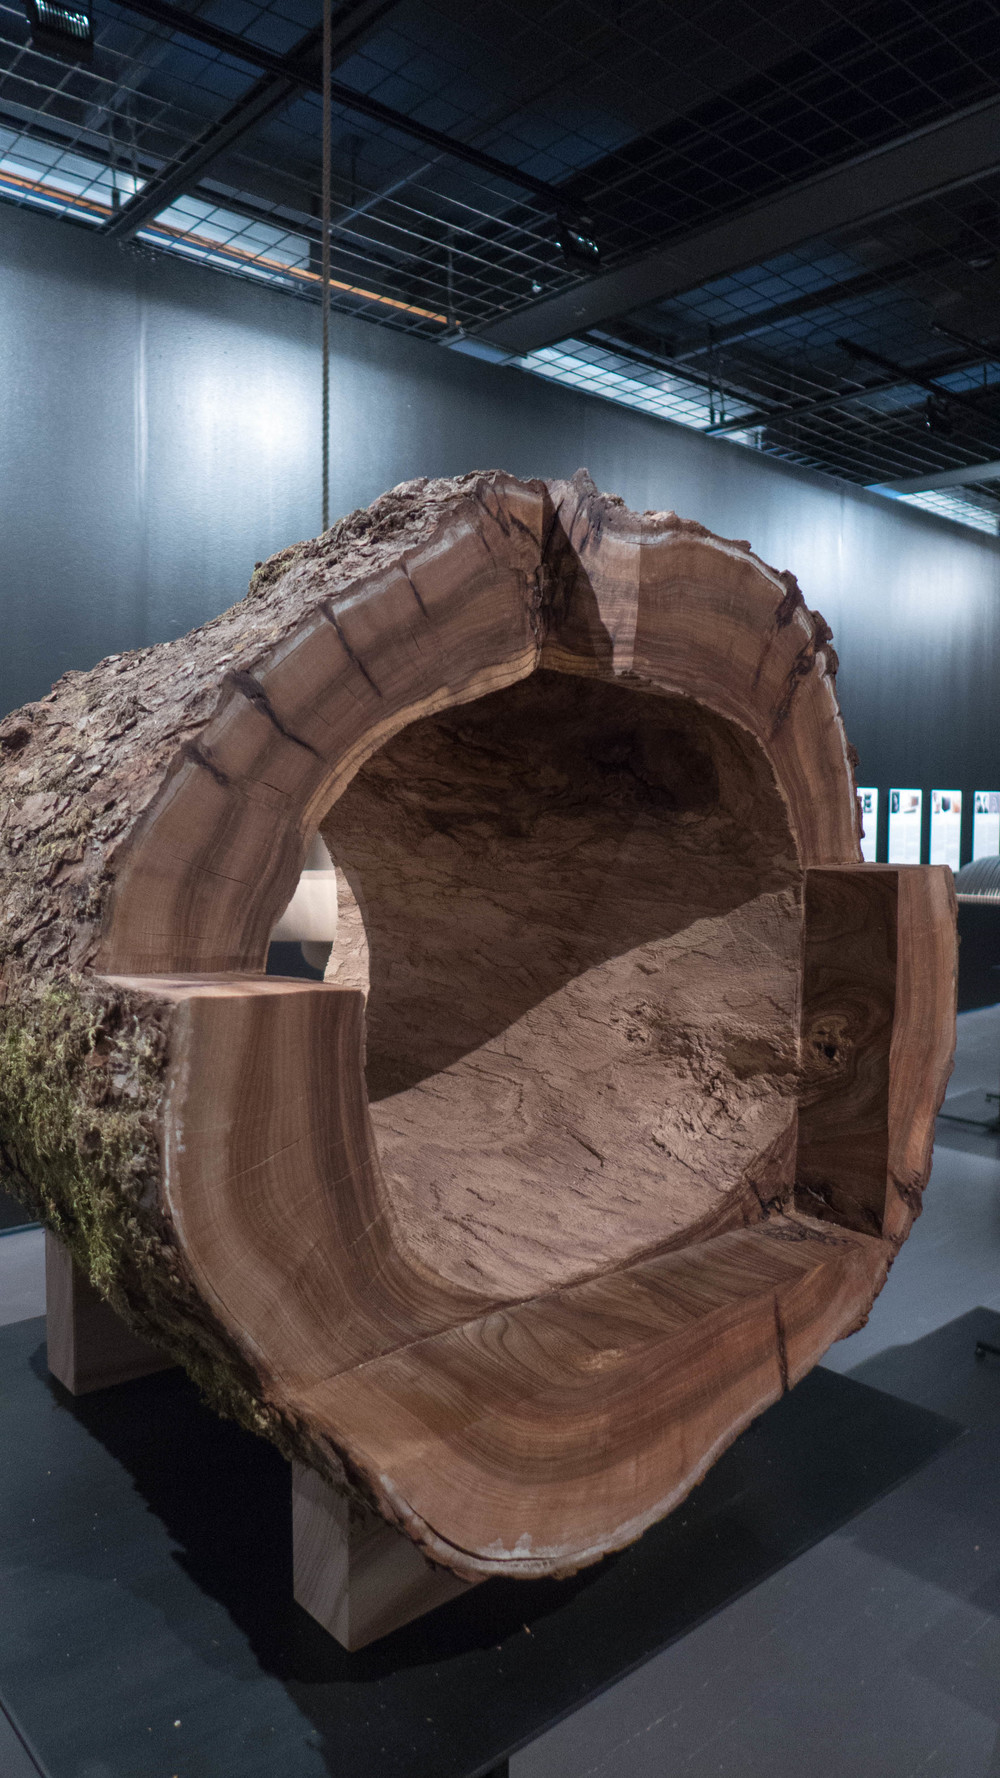 A hollowed out log - the exhibition piece from JKMM Architects